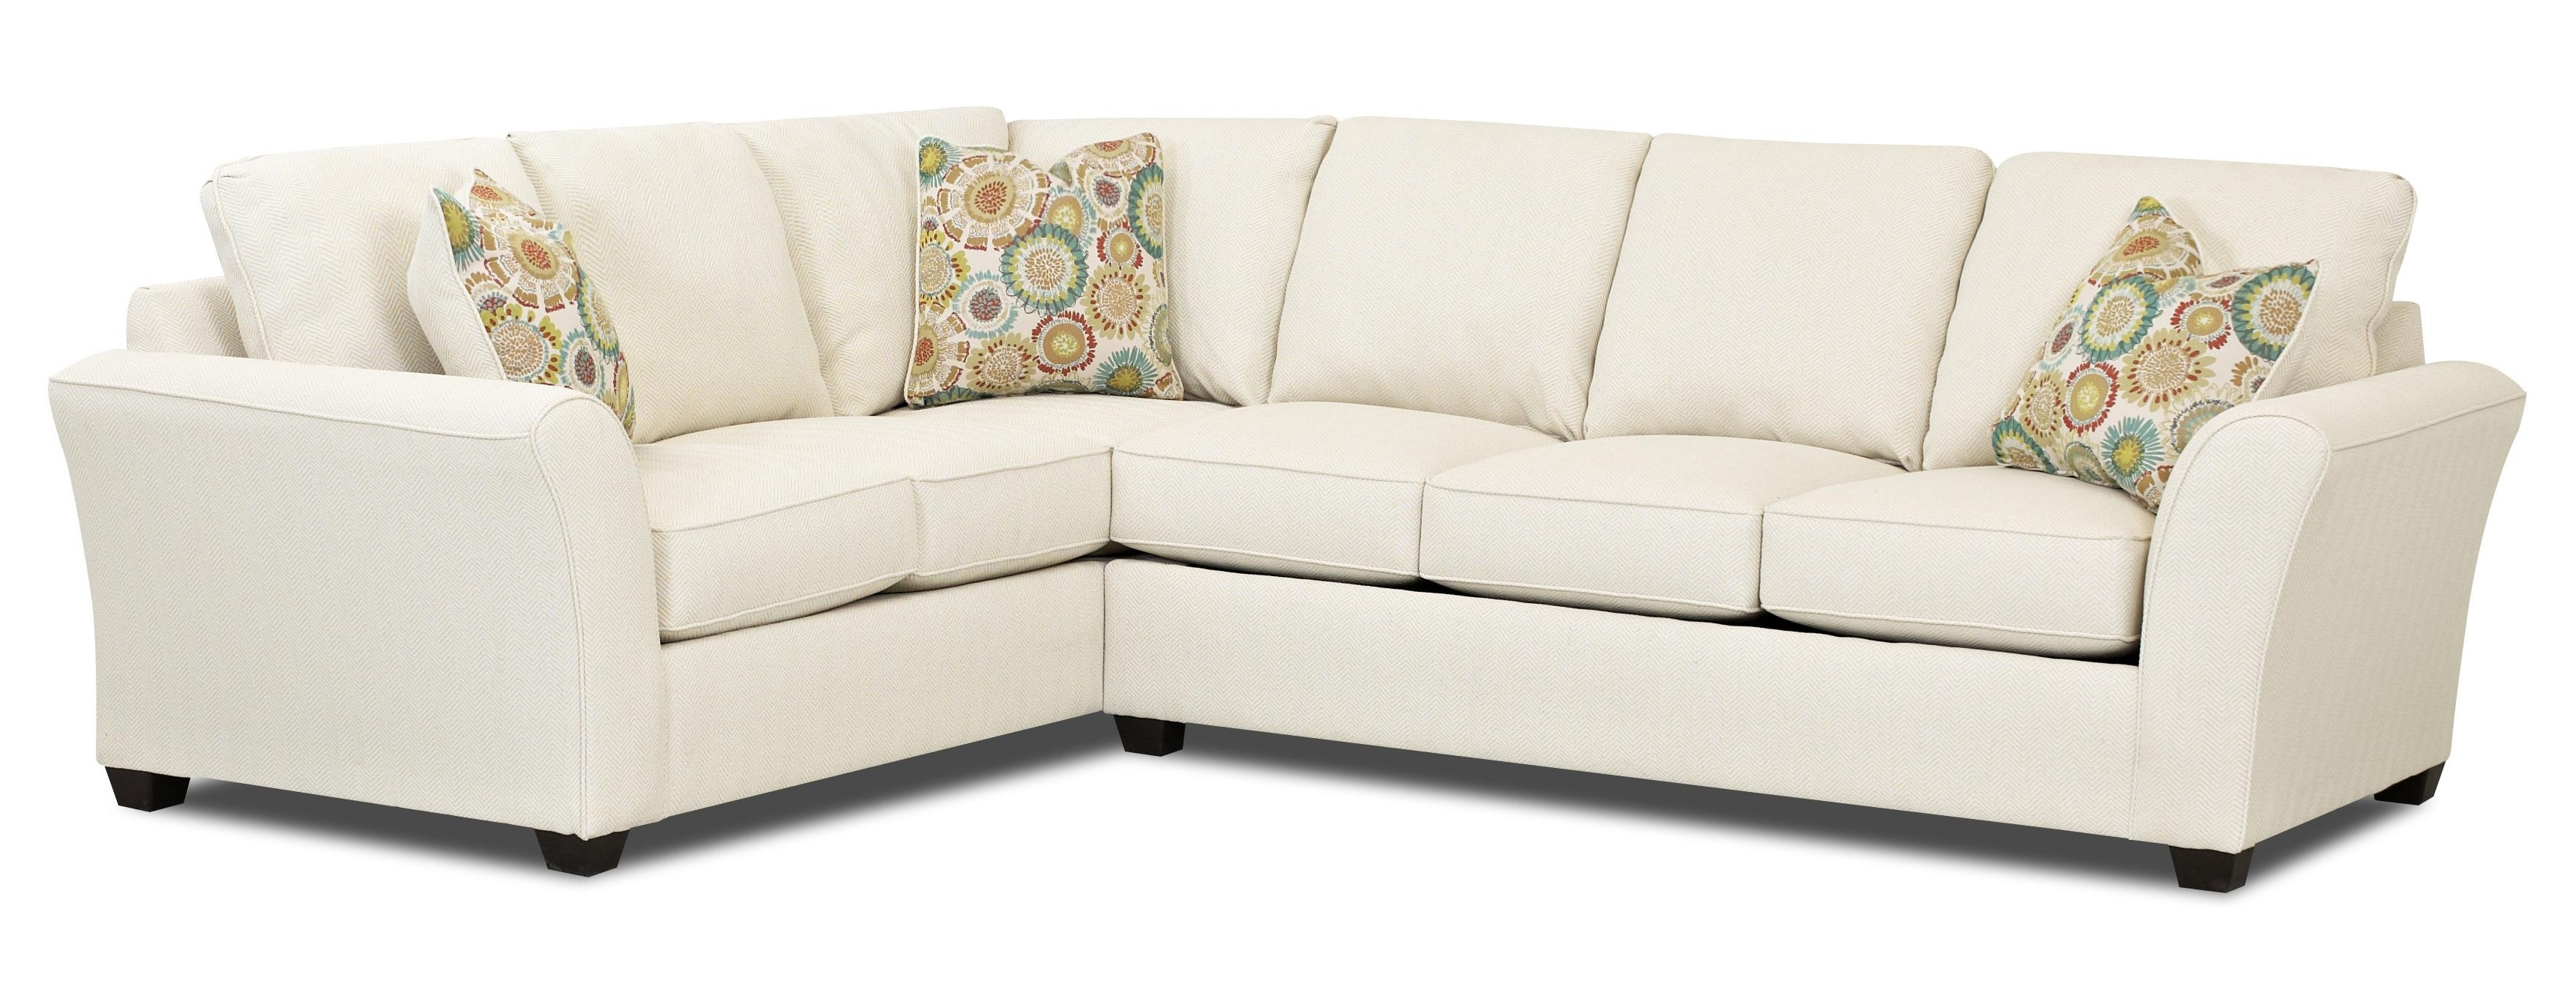 Most Current Furniture: Comfy Design Of Tempurpedic Sleeper Sofa For Modern Throughout Small Sofas And Chairs (View 7 of 20)